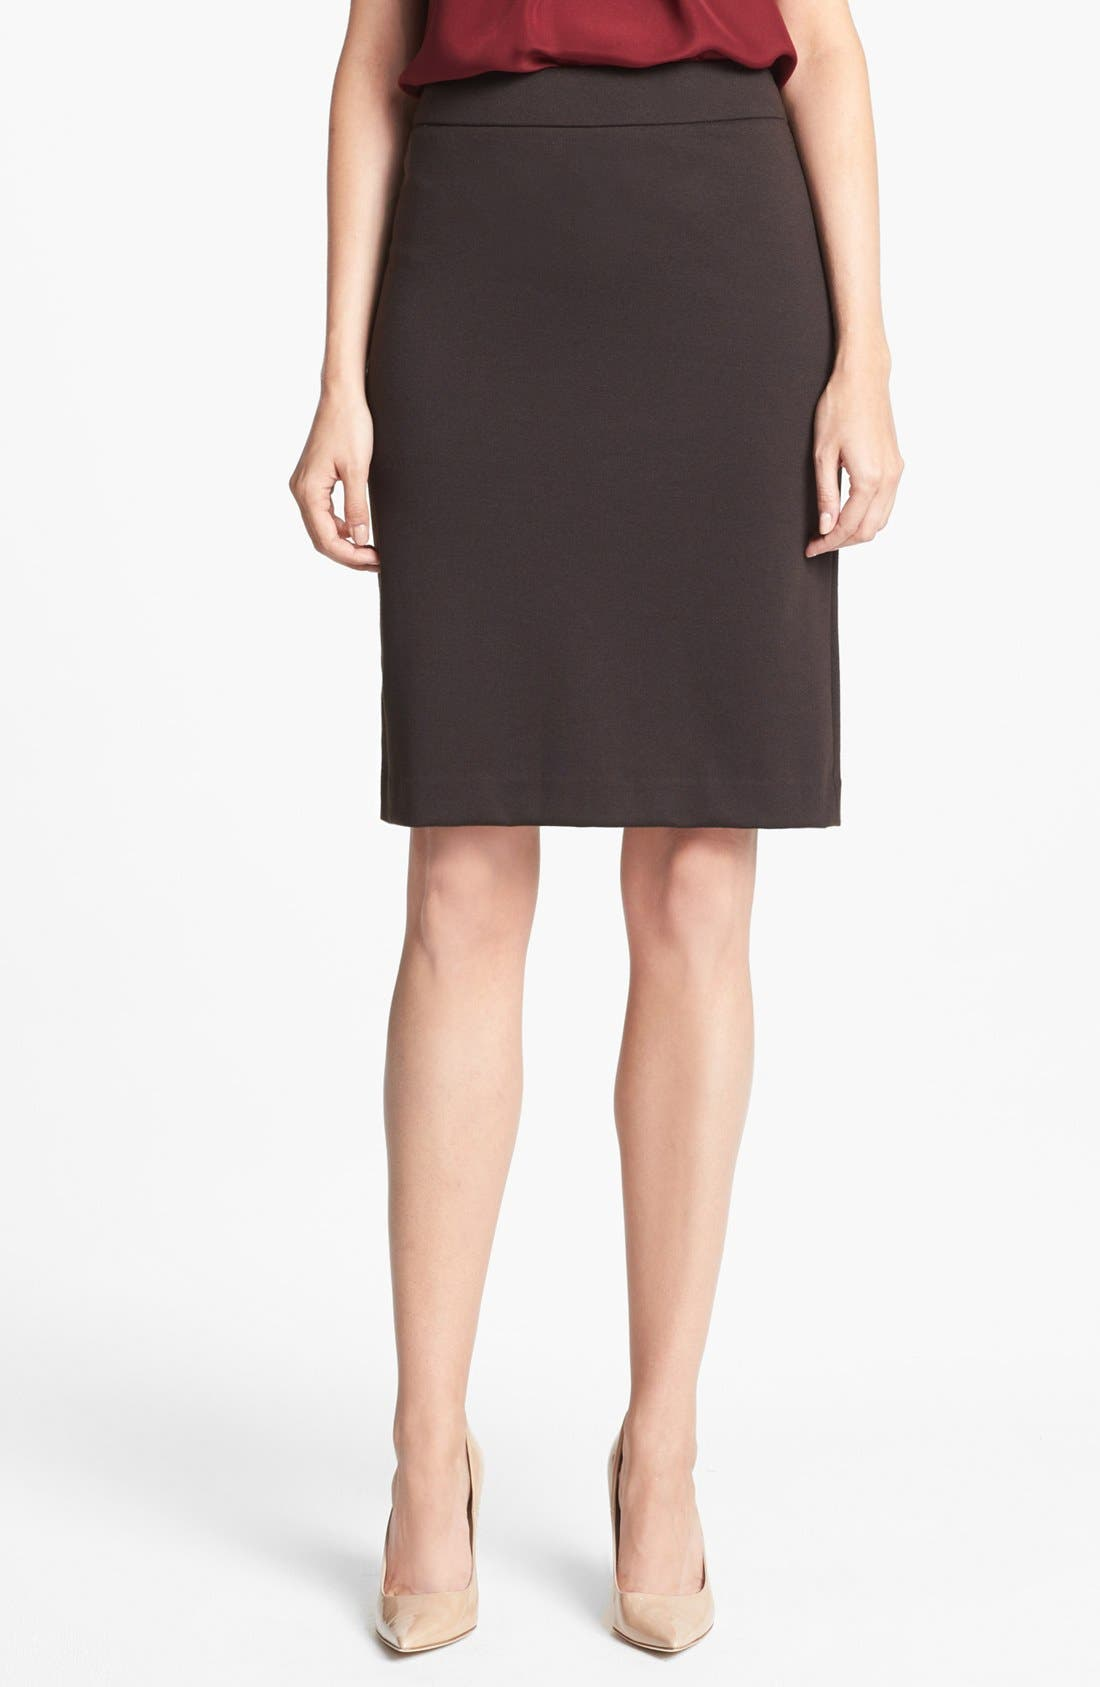 Alternate Image 1 Selected - Jones New York 'Lucy' Ponte Knit Pencil Skirt